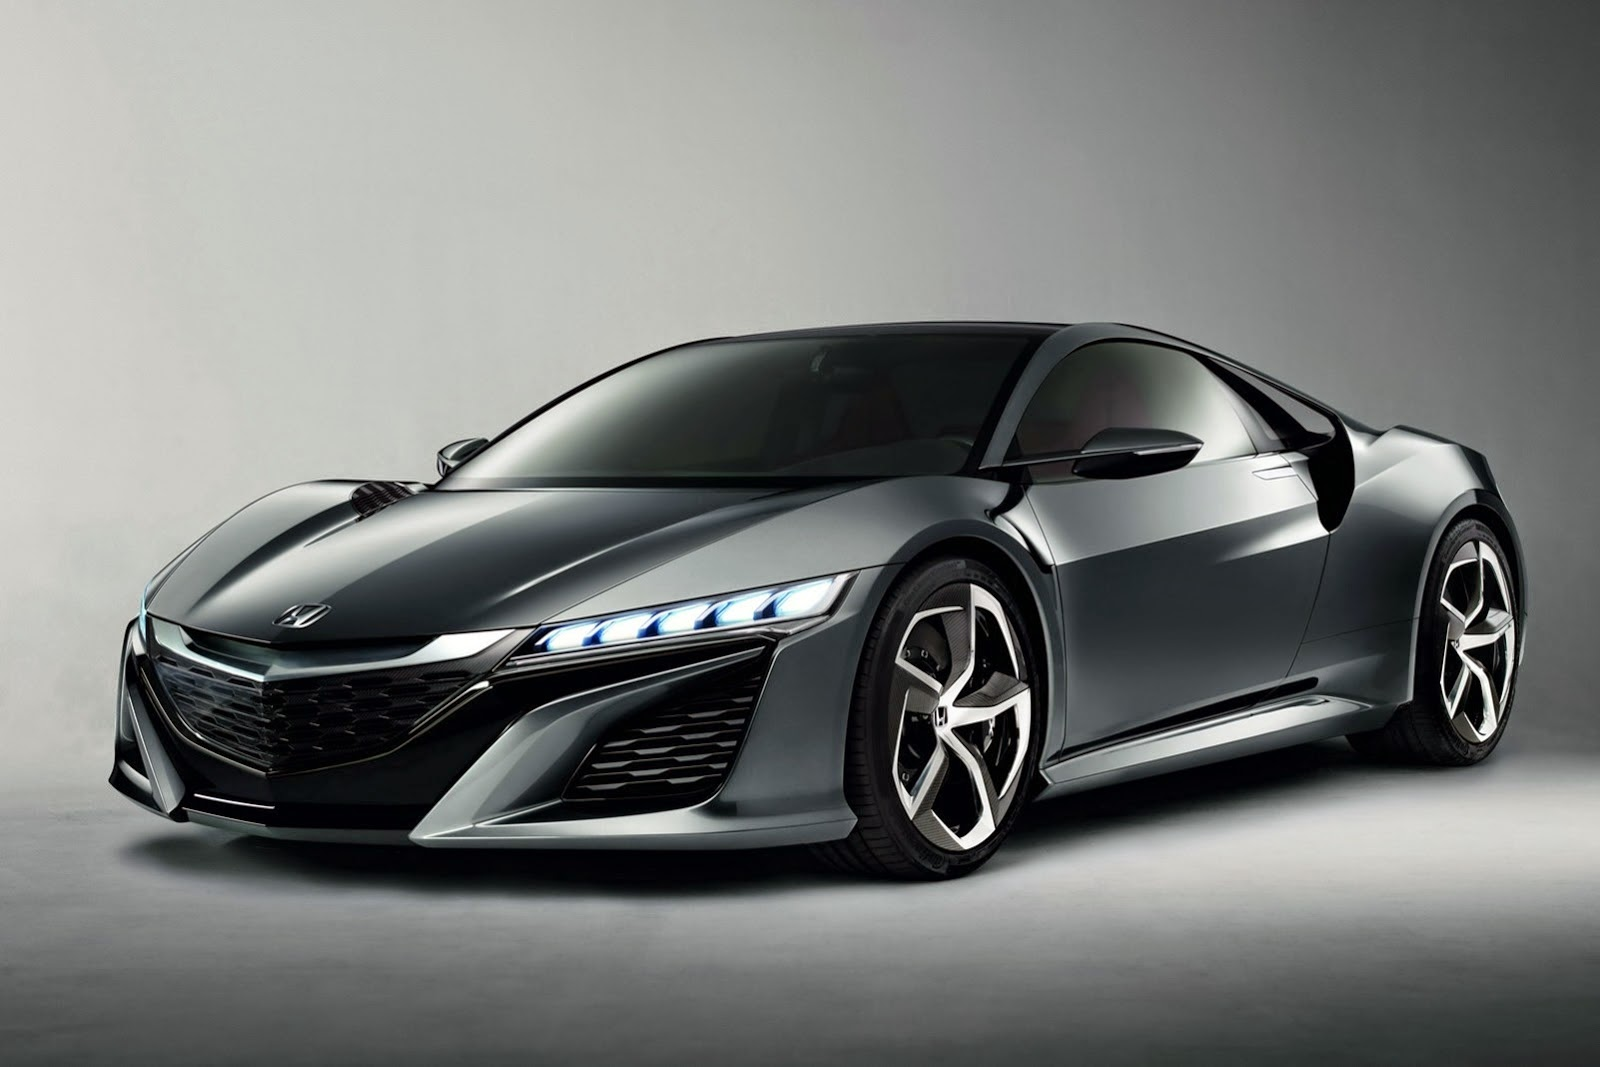 All New Honda Nsx Hybrid Sport Car Ready To Order In Britain